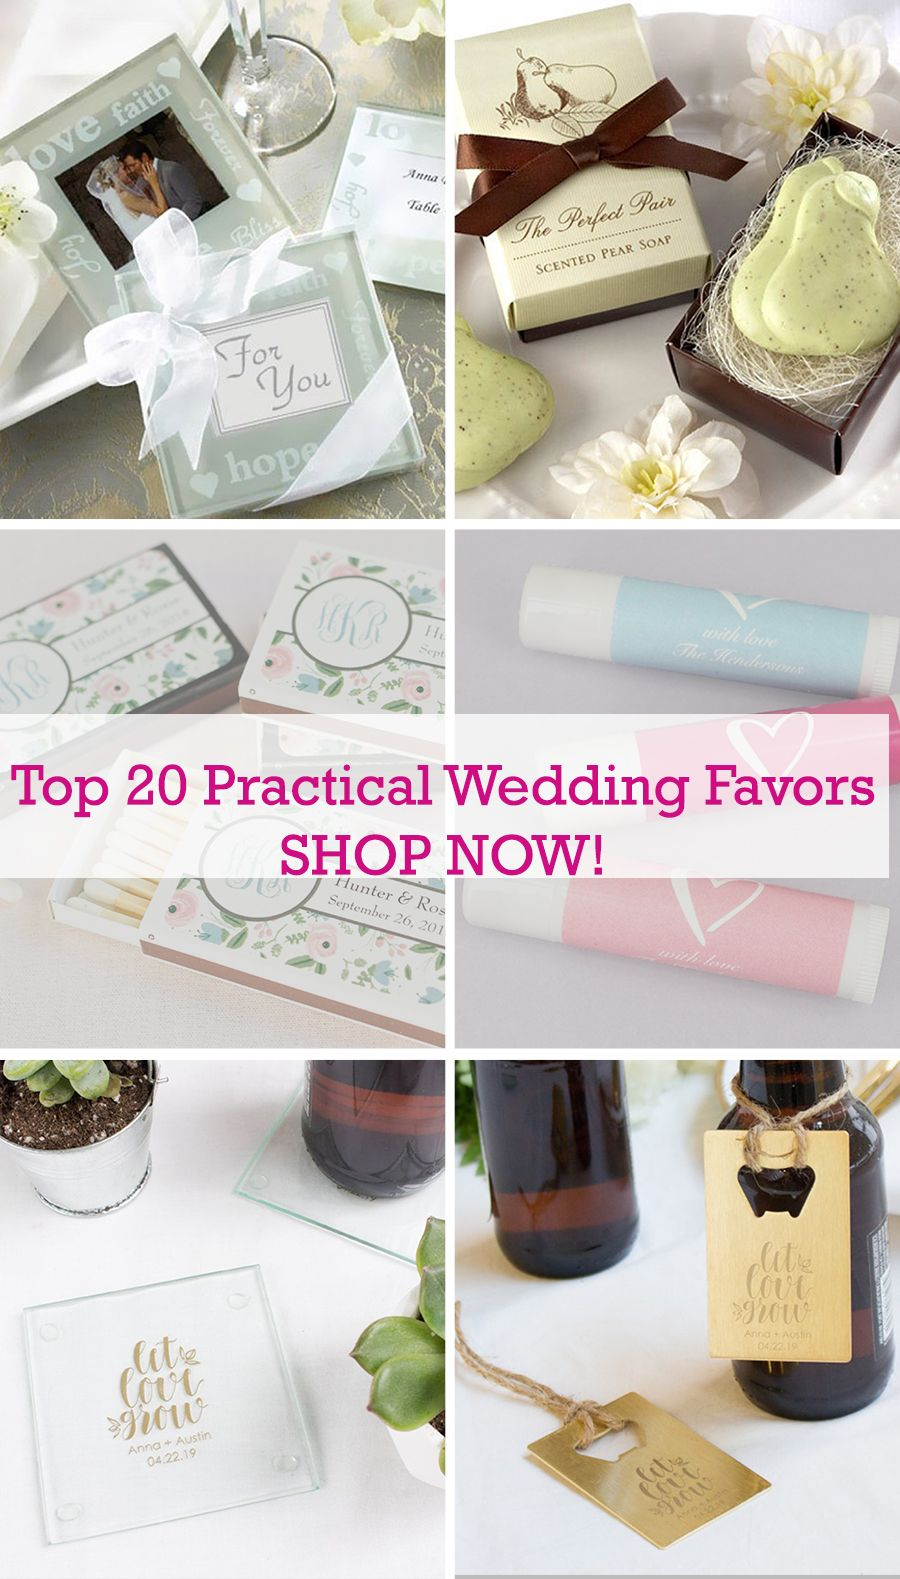 Looking For The Perfect Practical Wedding Favors We Ve Rounded Up Our Top 20 Favorite Pract Practical Wedding Favors Inexpensive Wedding Favors Wedding Favors